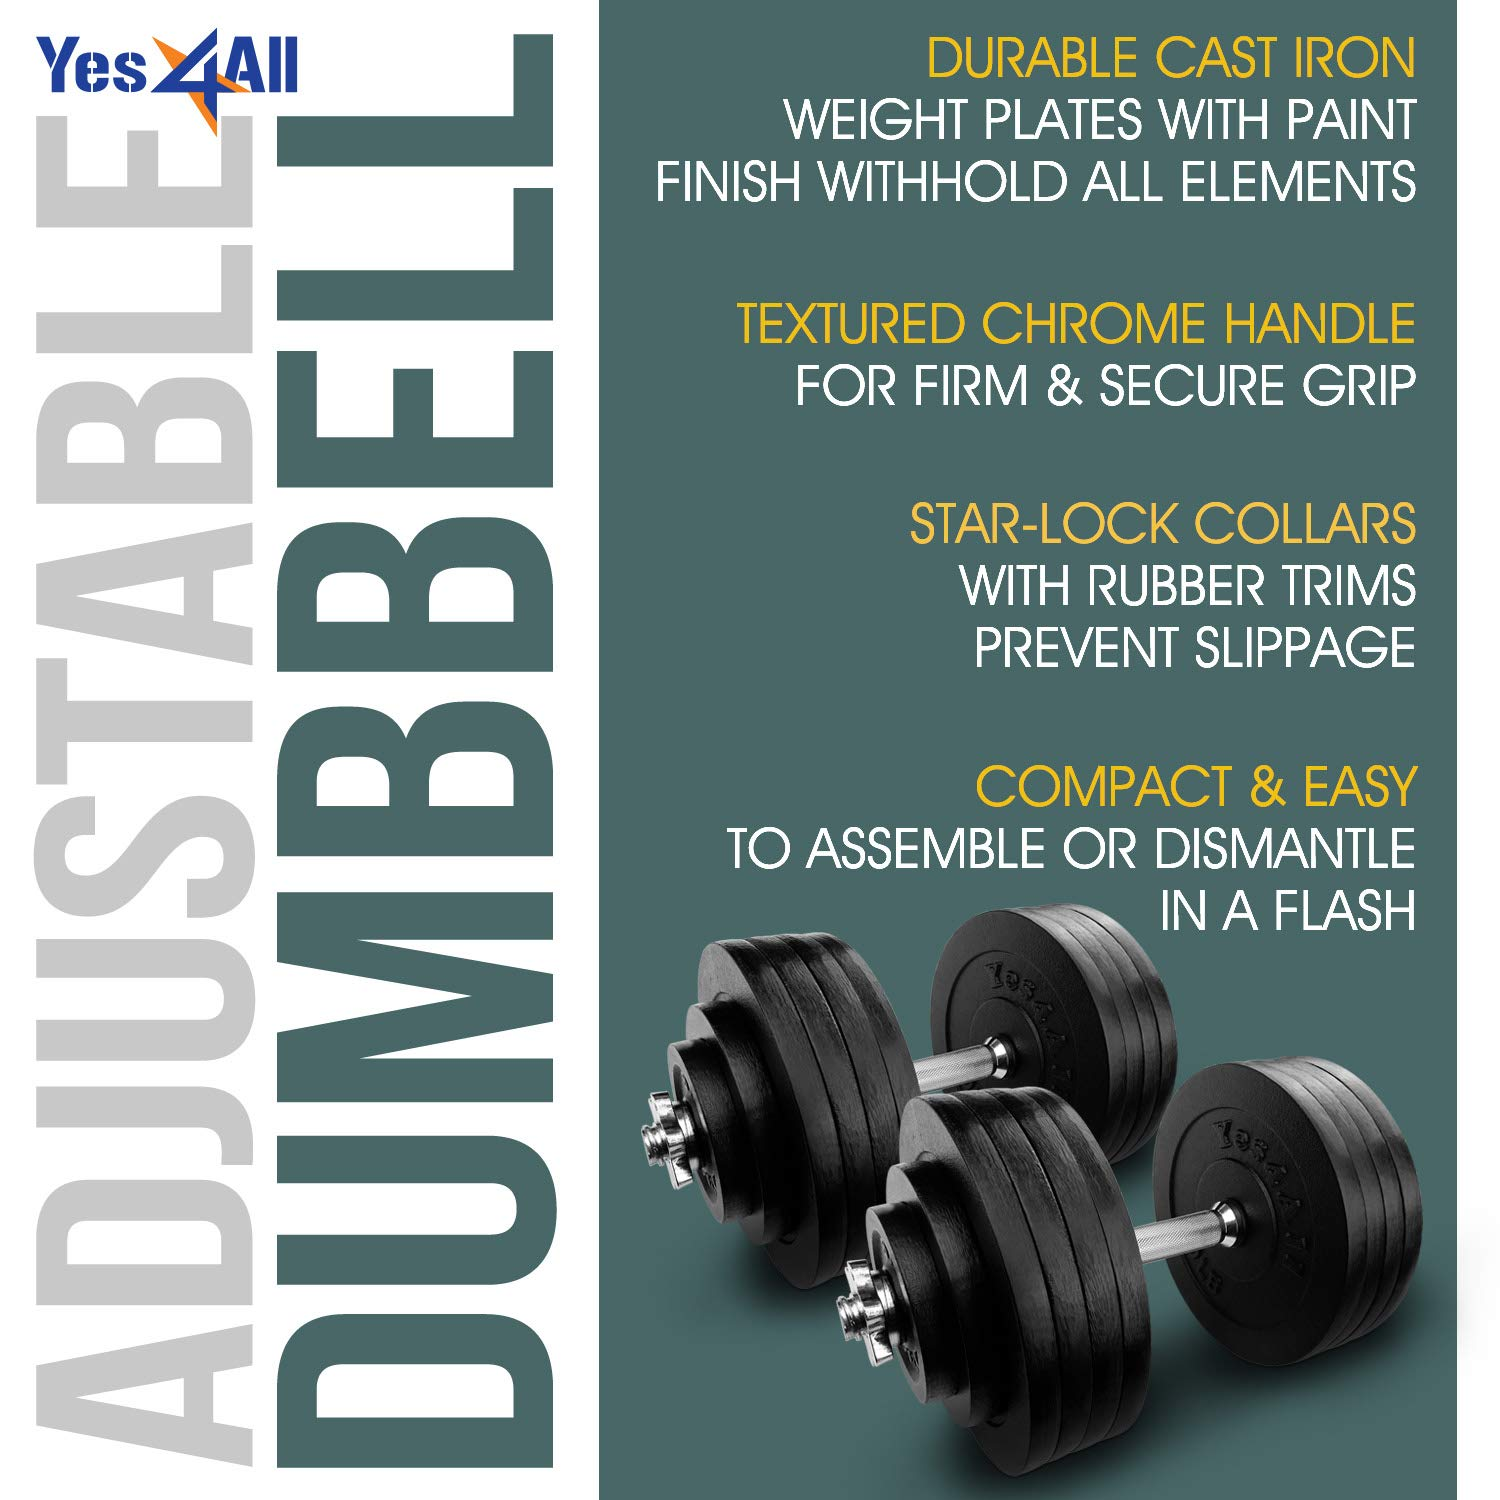 Yes4All Adjustable Dumbbells 40, 50, 52.5, 60 to 105 lbs (200 lbs) - ²ZZCEZ by Yes4All (Image #1)